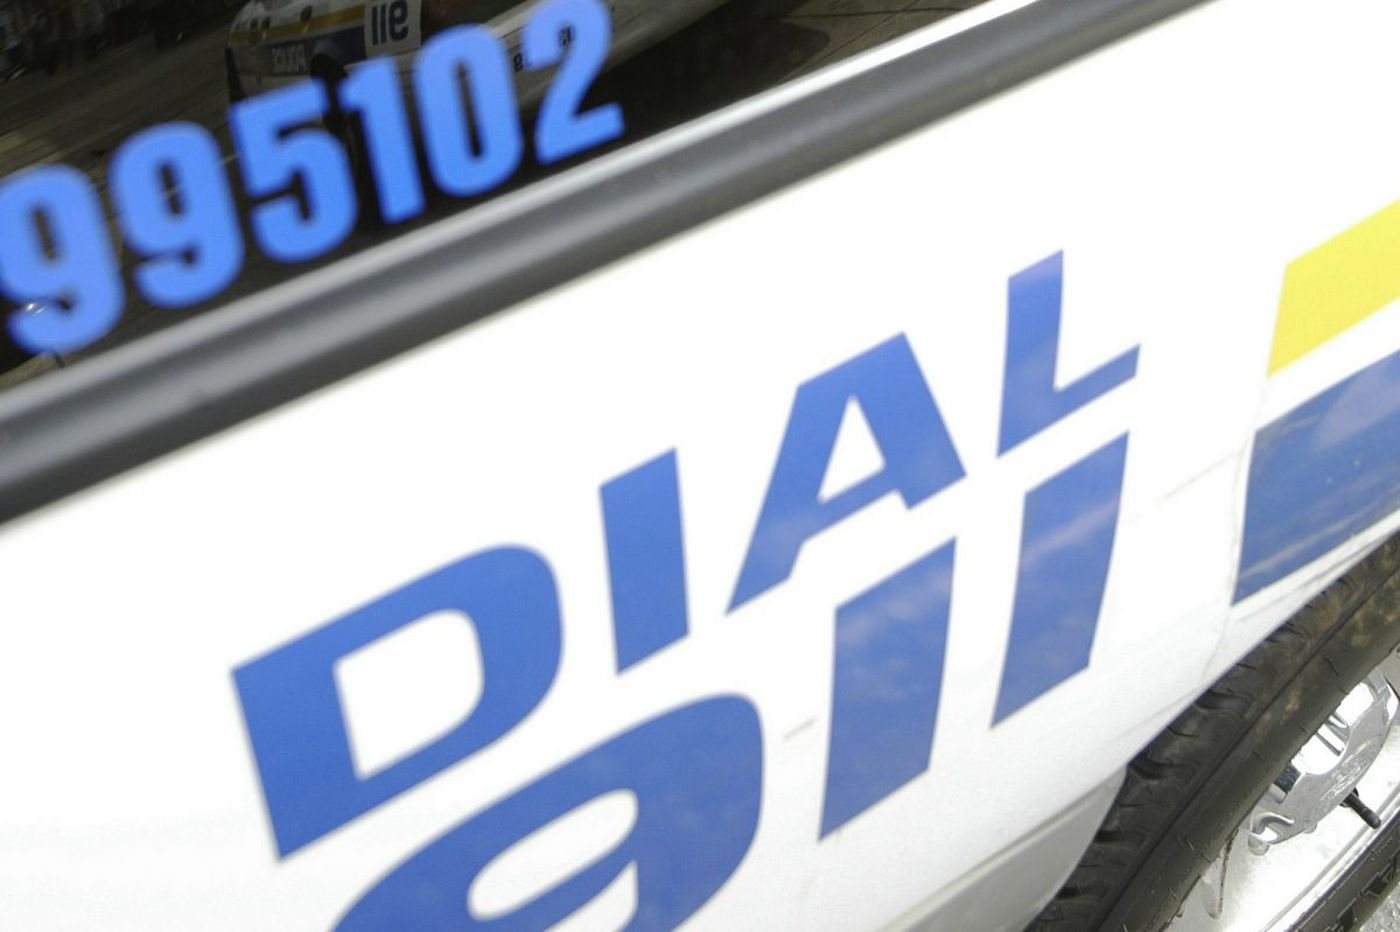 Woman, 25, fatally shot in North Philly